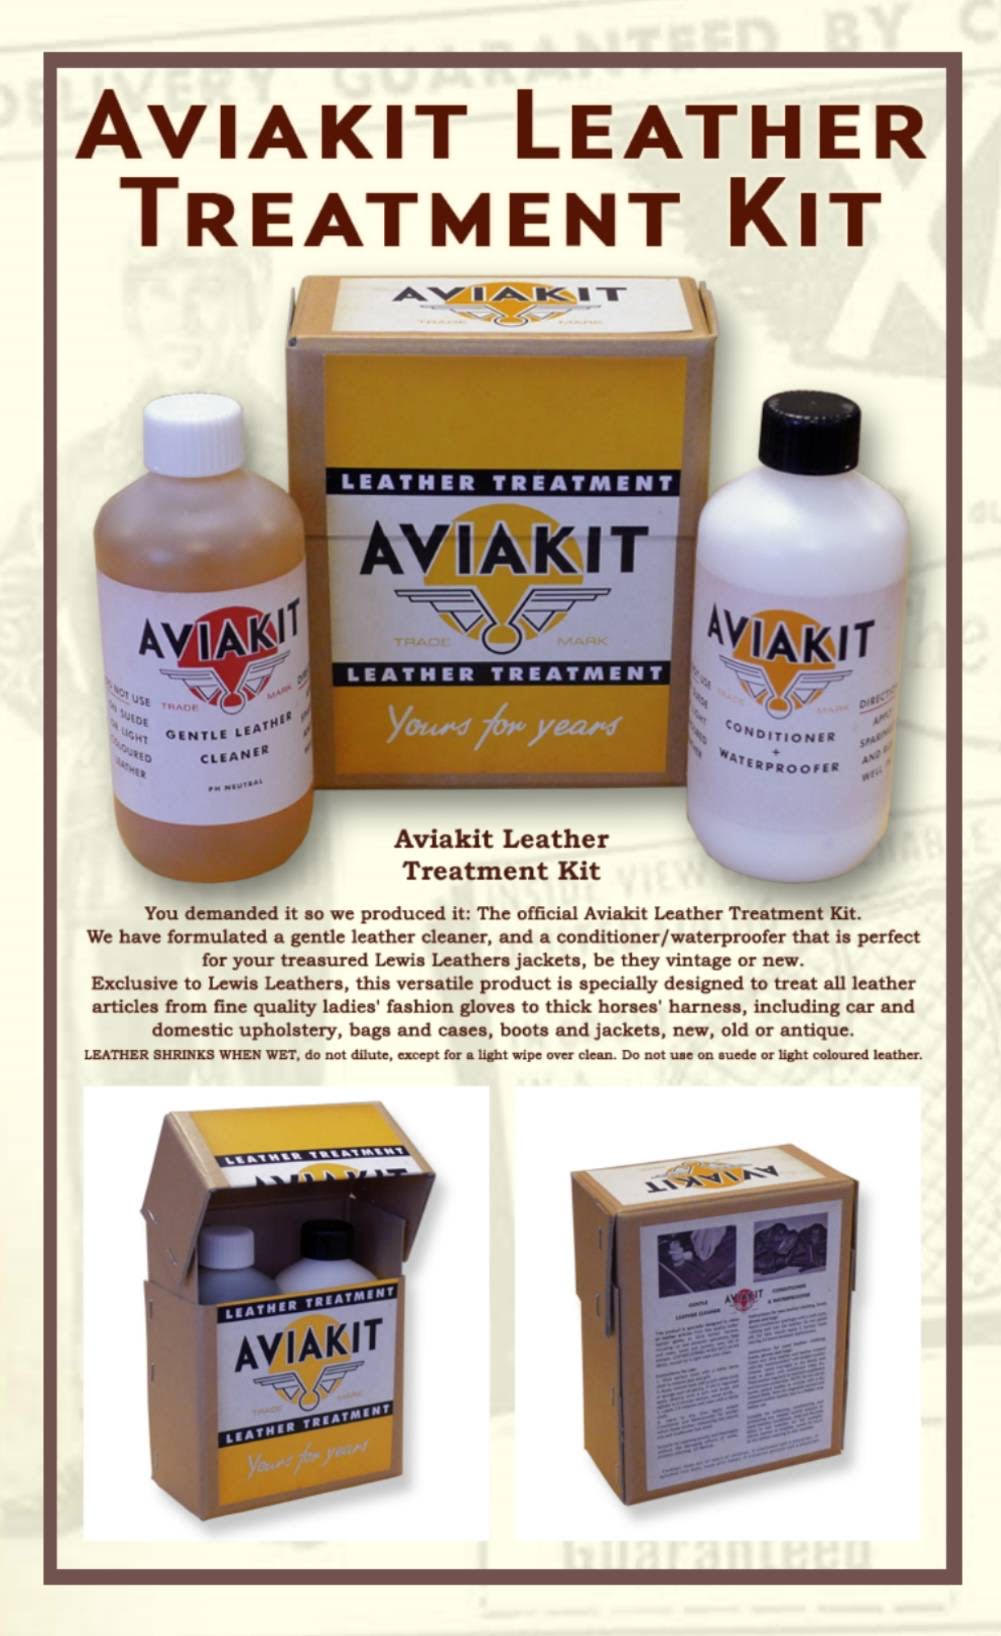 Lewis Leathers / AVIAKIT Leather Treatment Kit